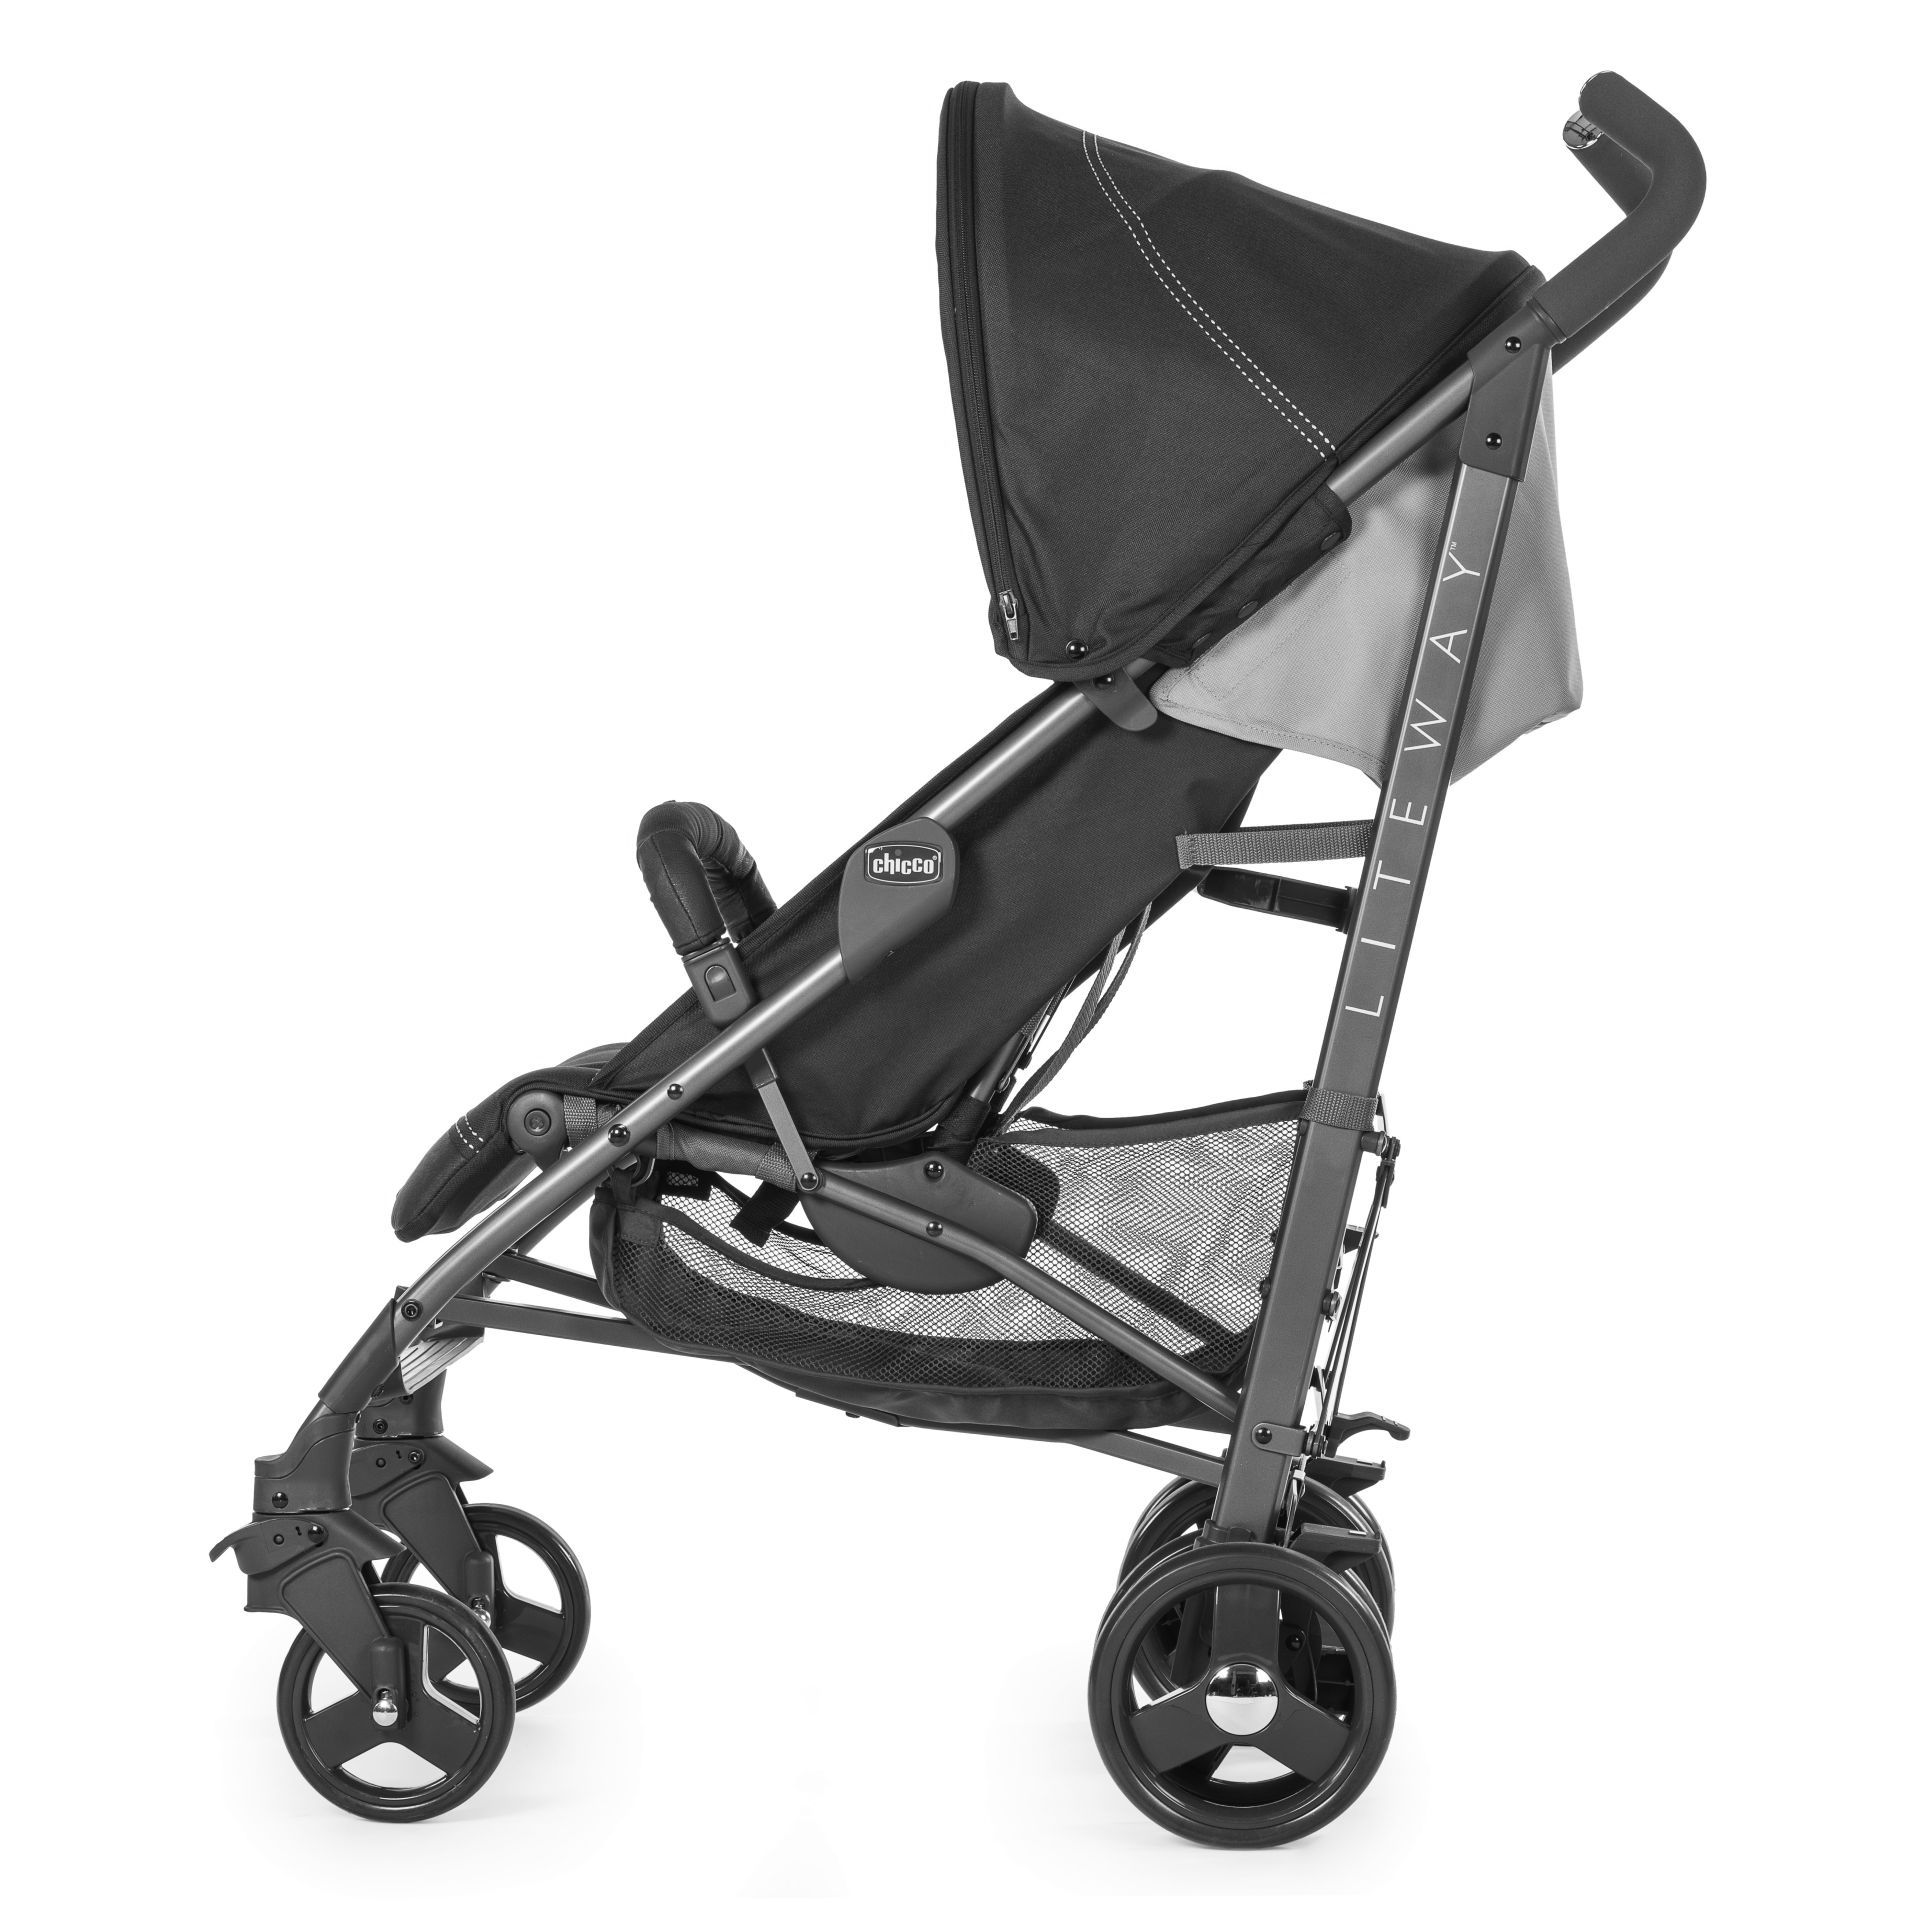 chicco pushchair lite way 3 2018 dove grey buy at kidsroom strollers. Black Bedroom Furniture Sets. Home Design Ideas